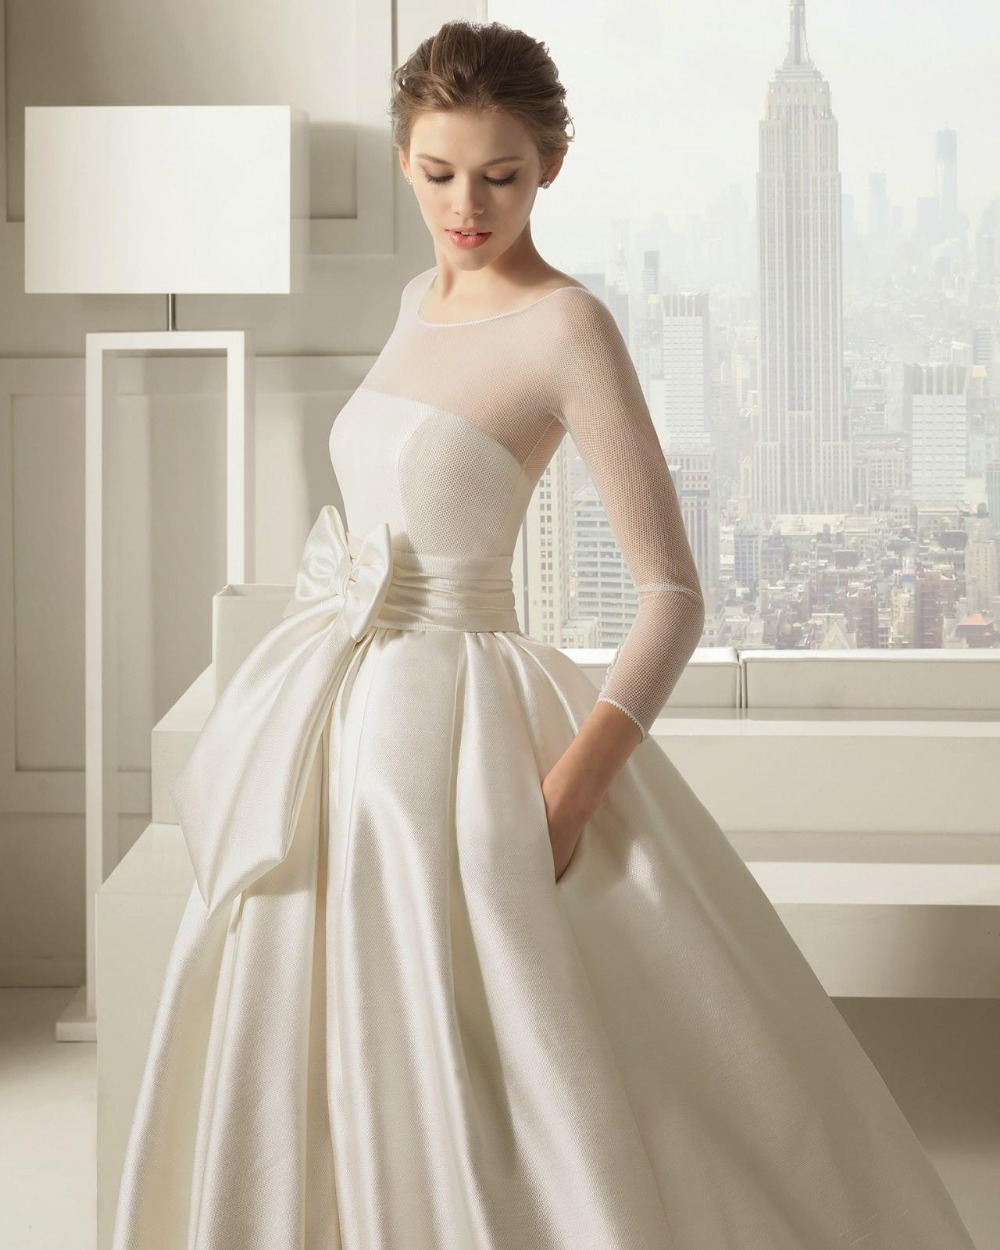 Long Sleeve Ivory Wedding Dresses 2015 Bow Ball Gown O Neck Net